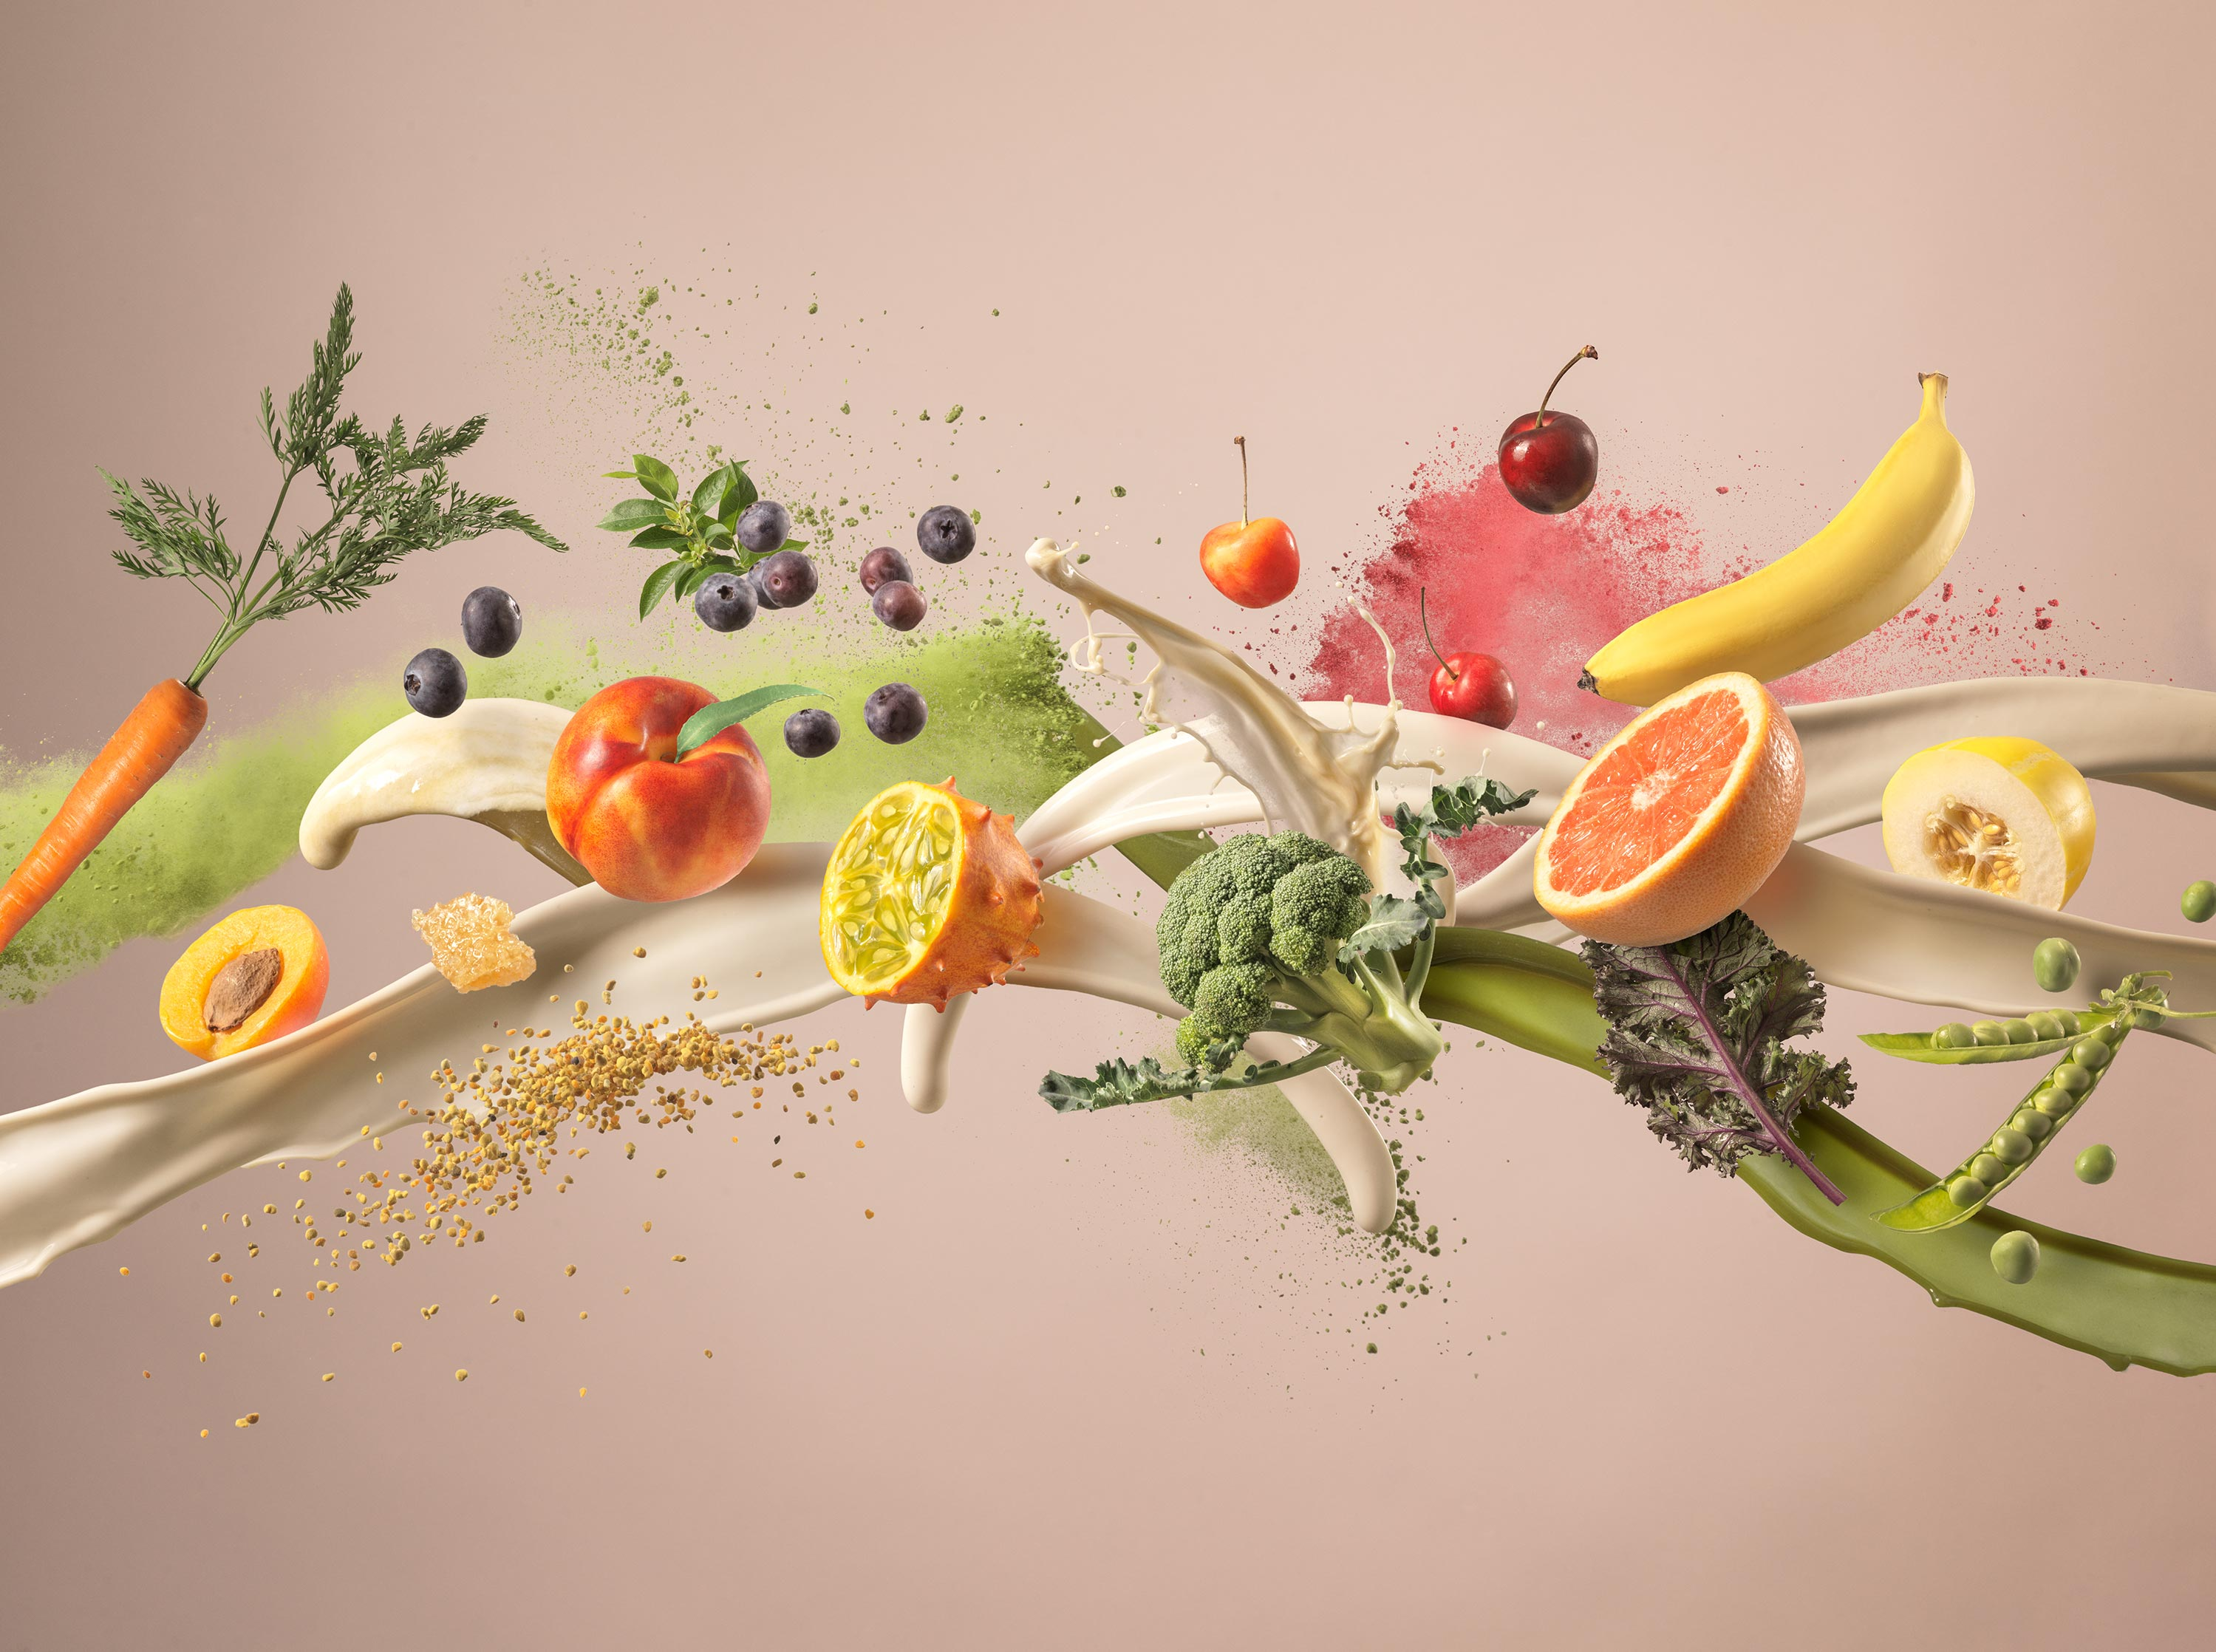 Protein Powder Splash | Steve Hansen Images Seattle Food Photographer